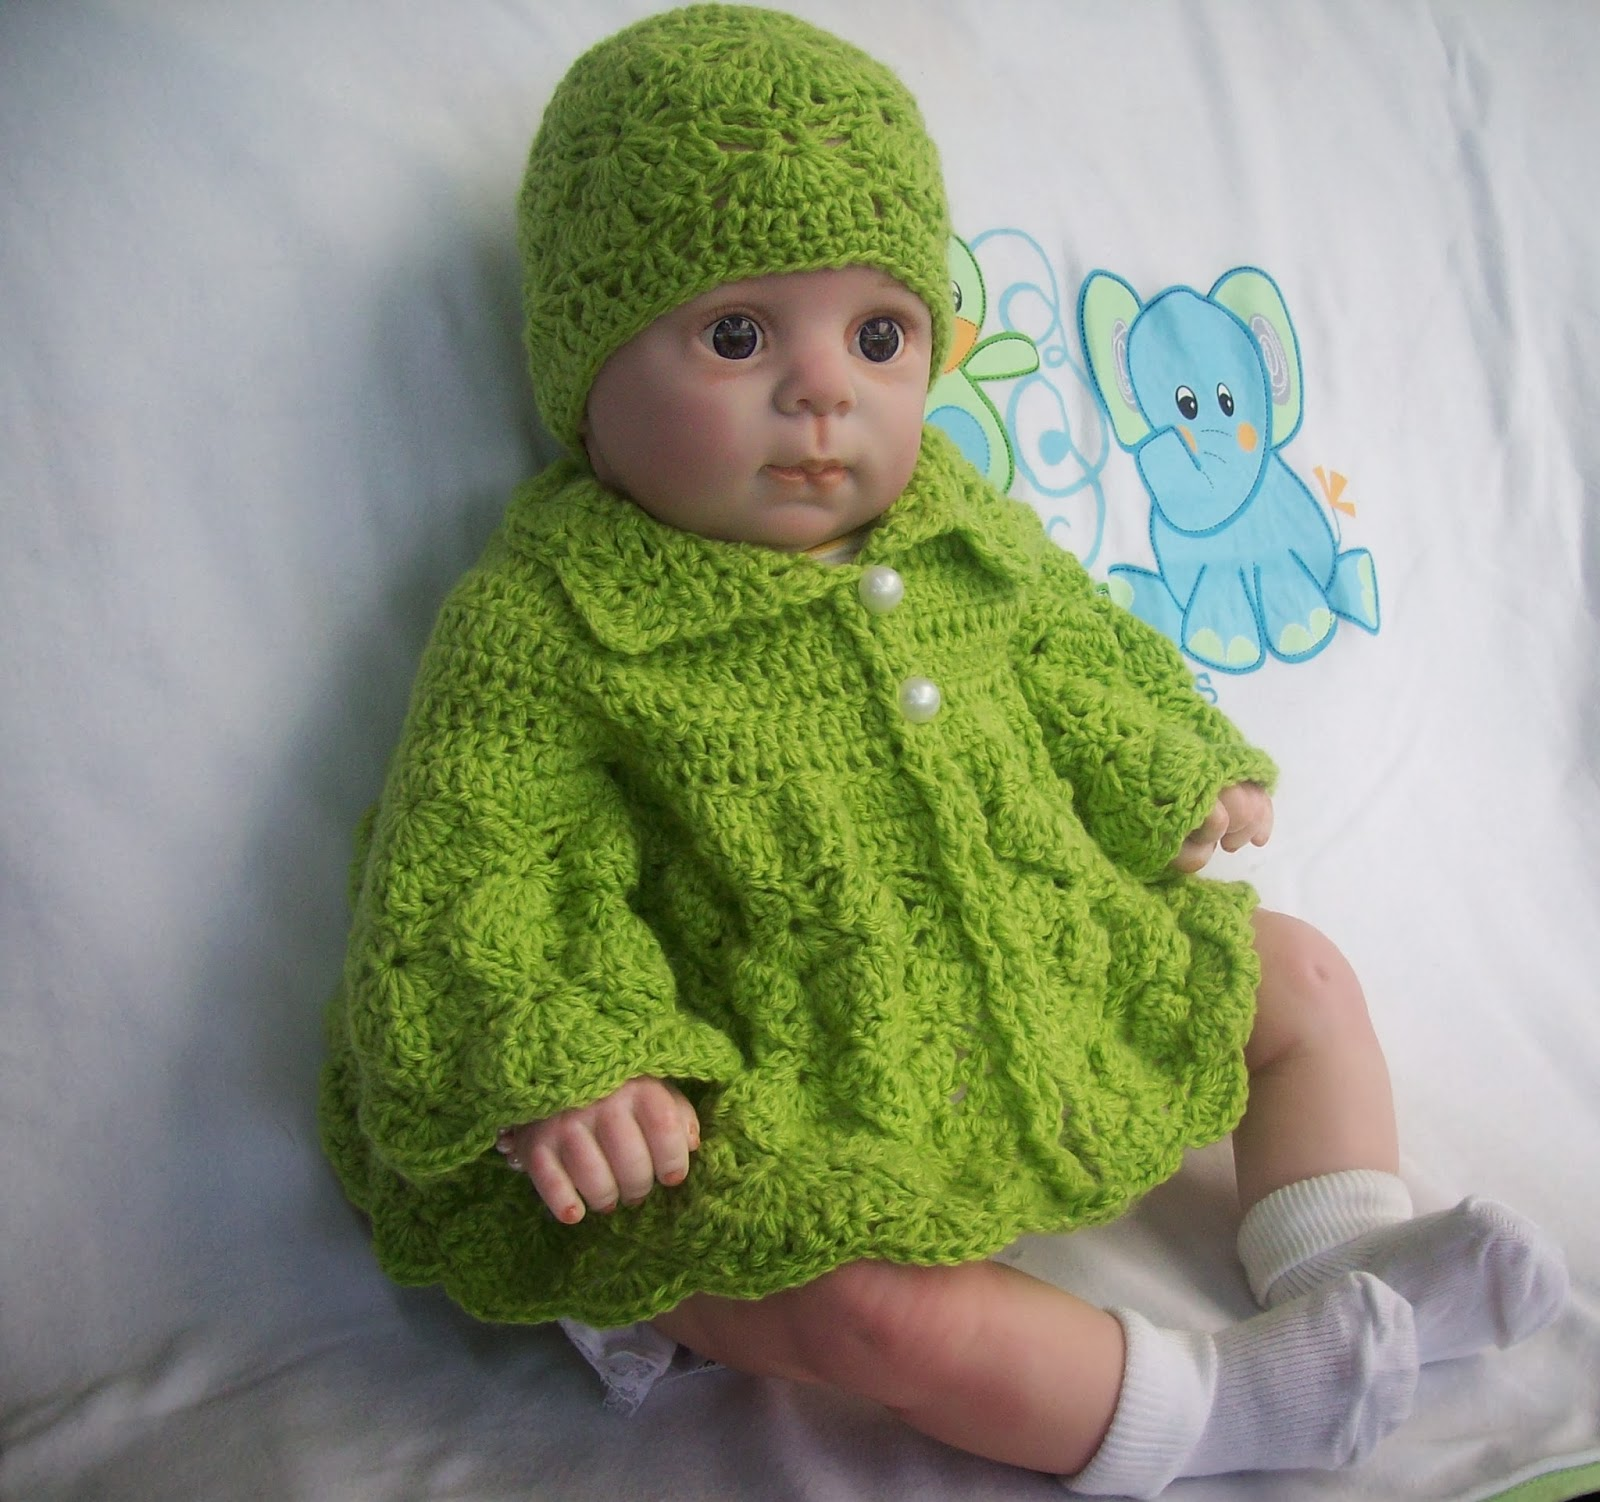 Crochet Baby Hat And Sweater Pattern : Free Crochet Patterns By Cats-Rockin-Crochet